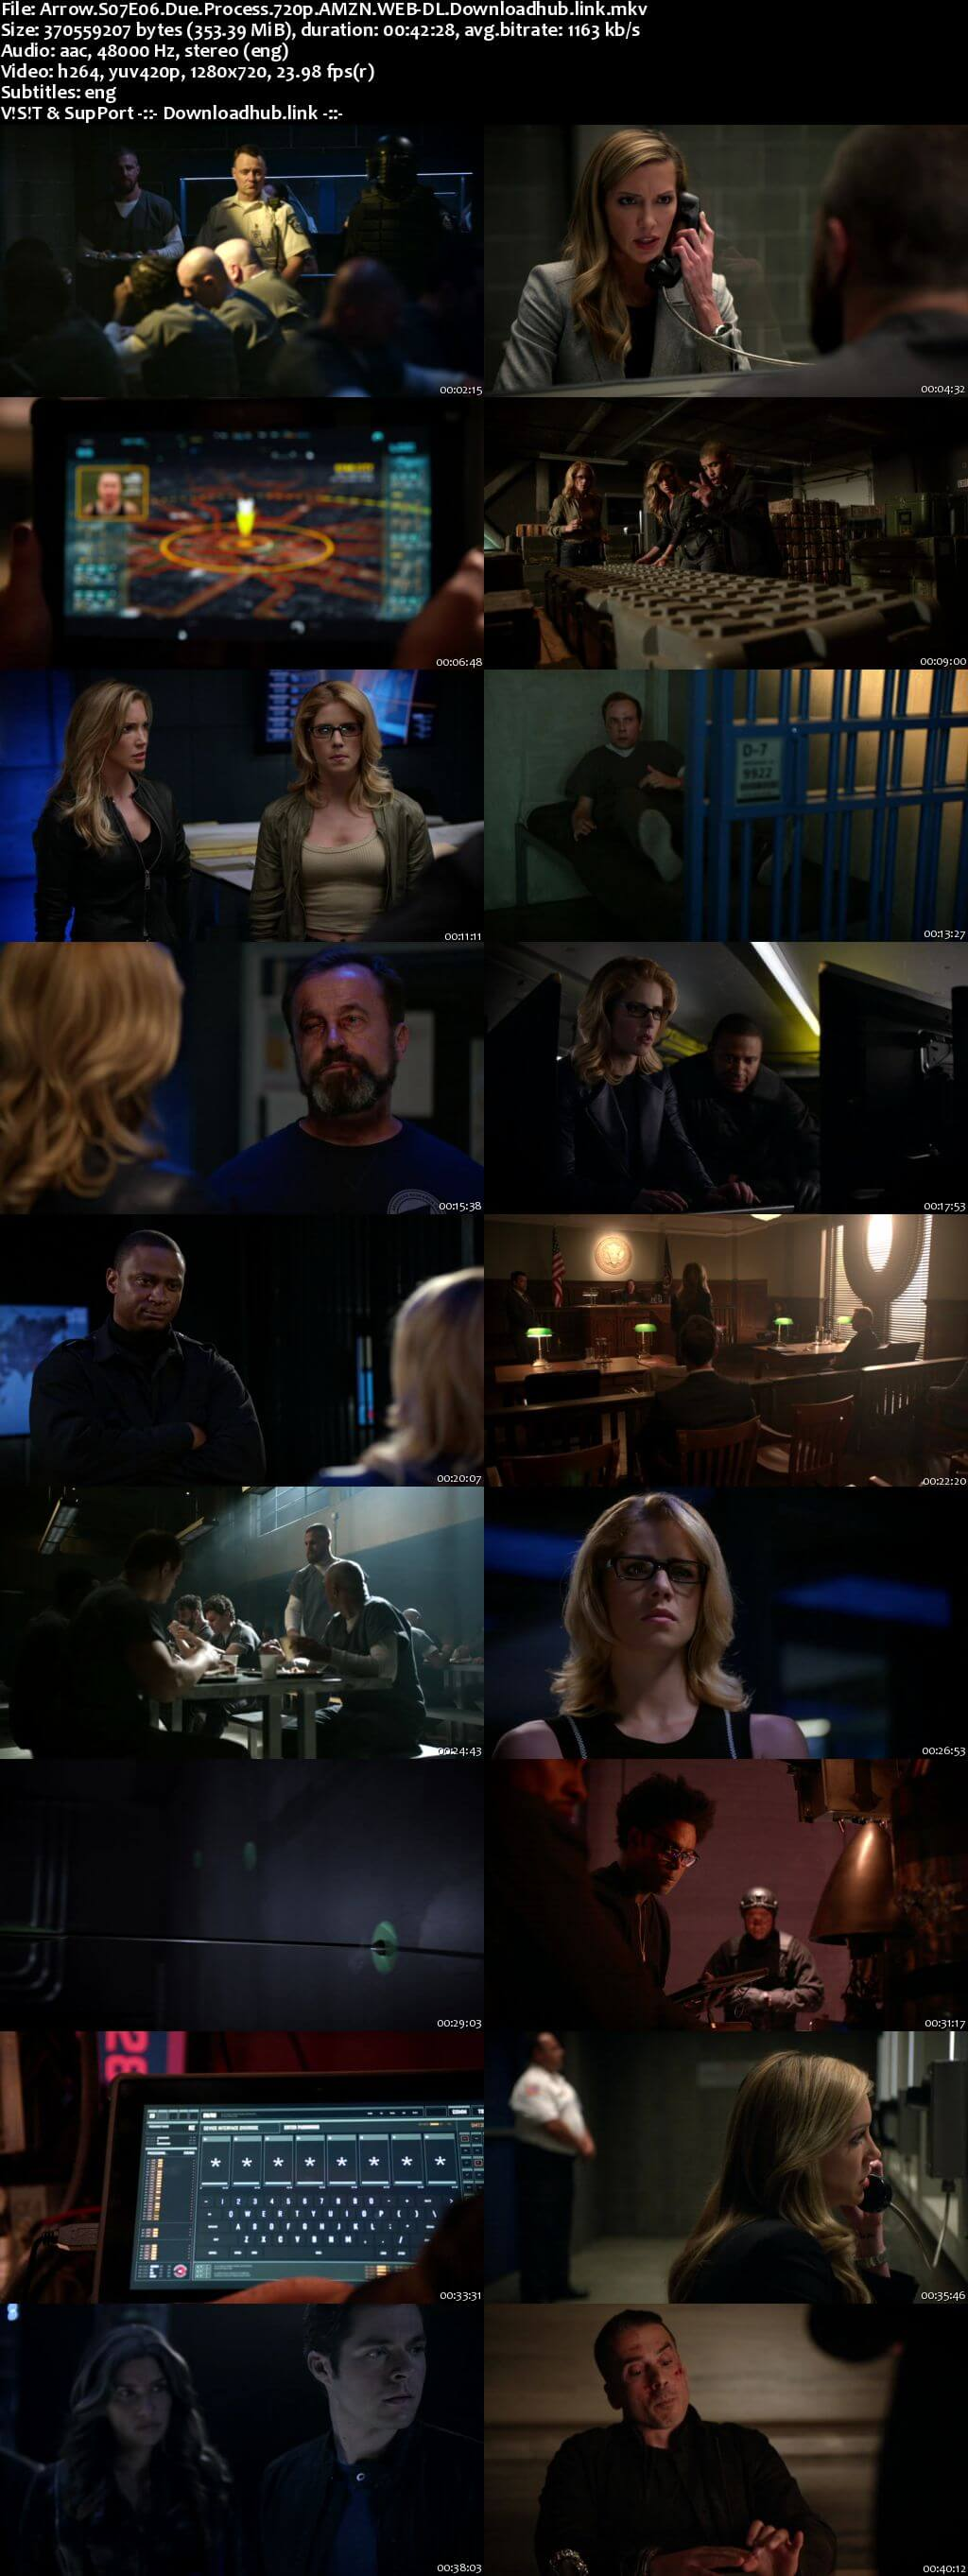 Arrow S07E06 350MB AMZN Web-DL 720p ESubs